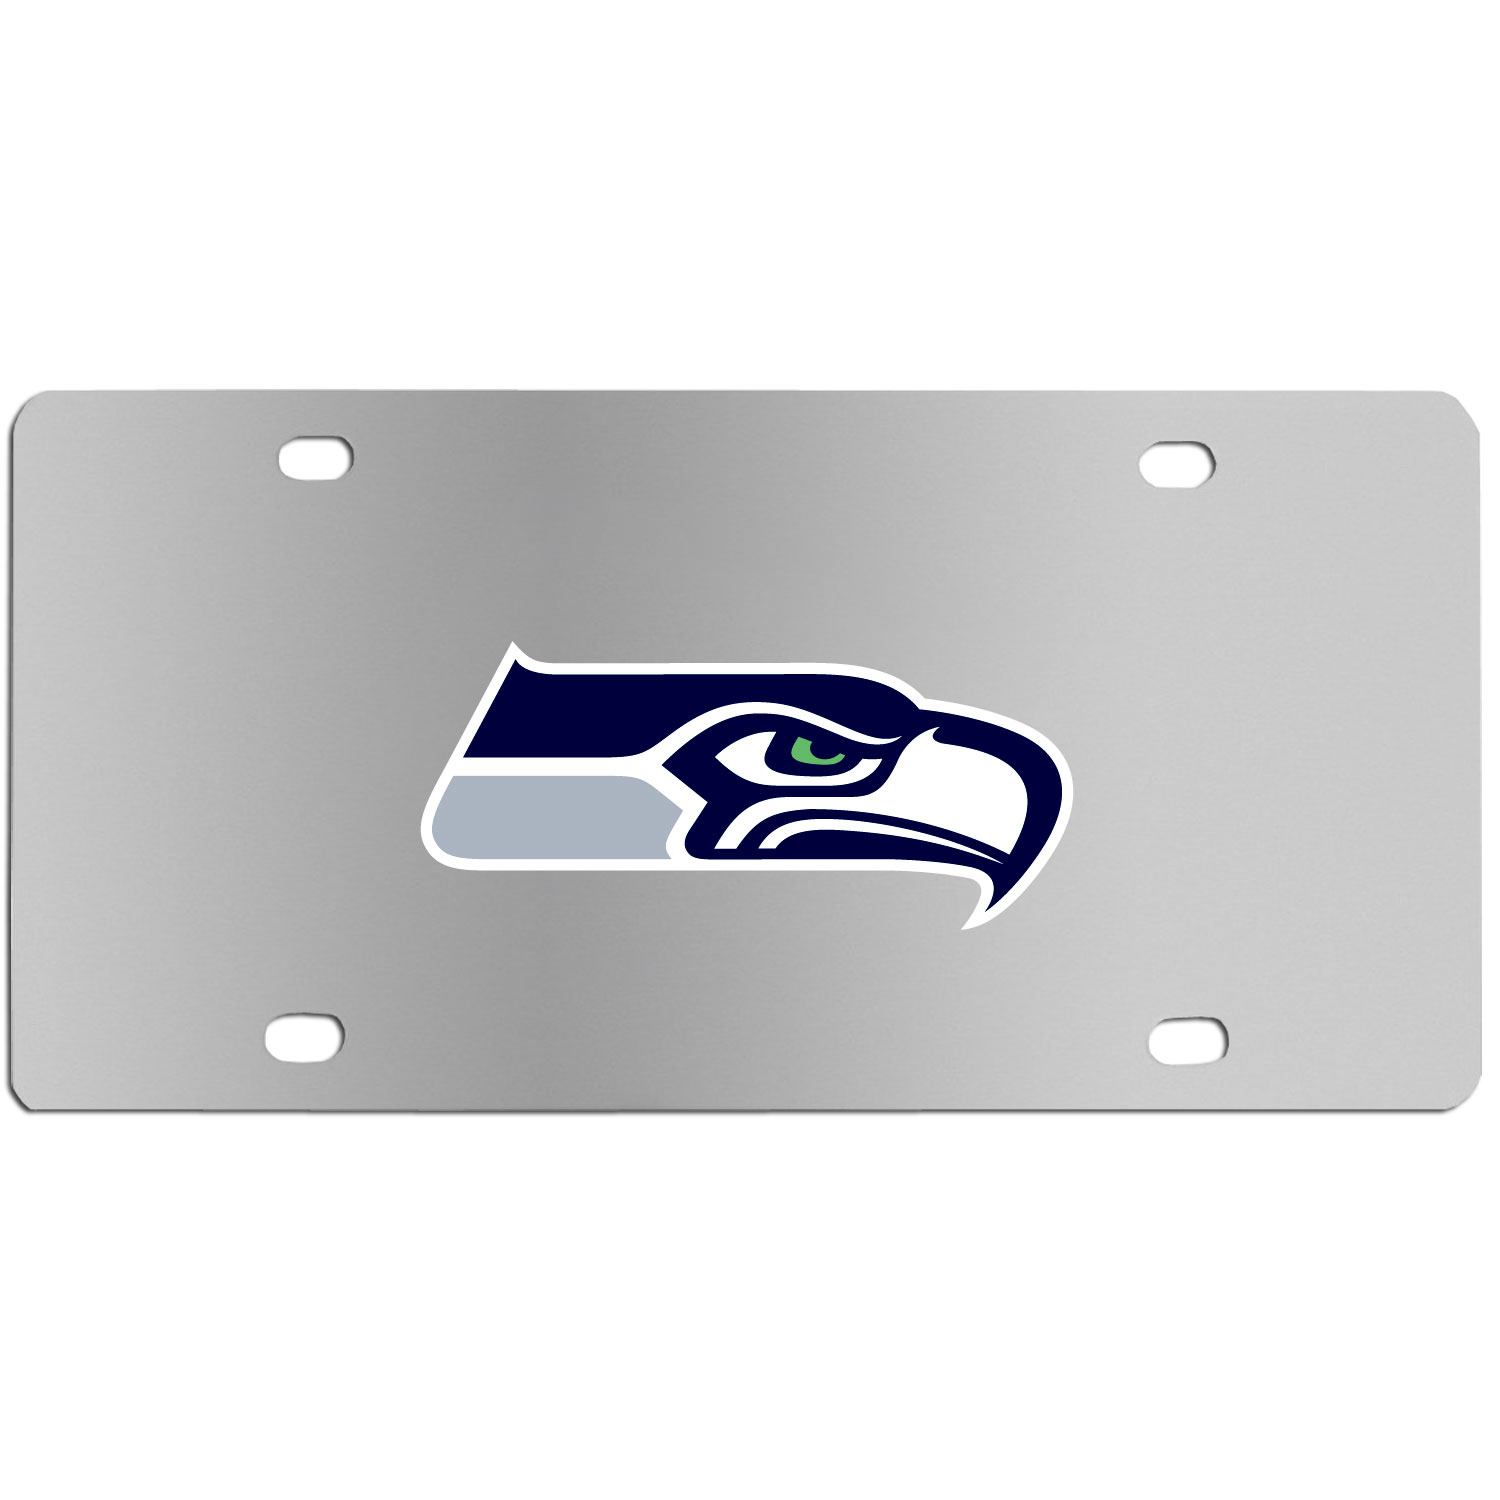 Seattle Seahawks Steel License Plate Wall Plaque - This high-quality stainless steel license plate features a detailed team logo on a the polished surface. The attractive plate is perfect for wall mounting in your home or office to become the perfect die-hard Seattle Seahawks fan decor.